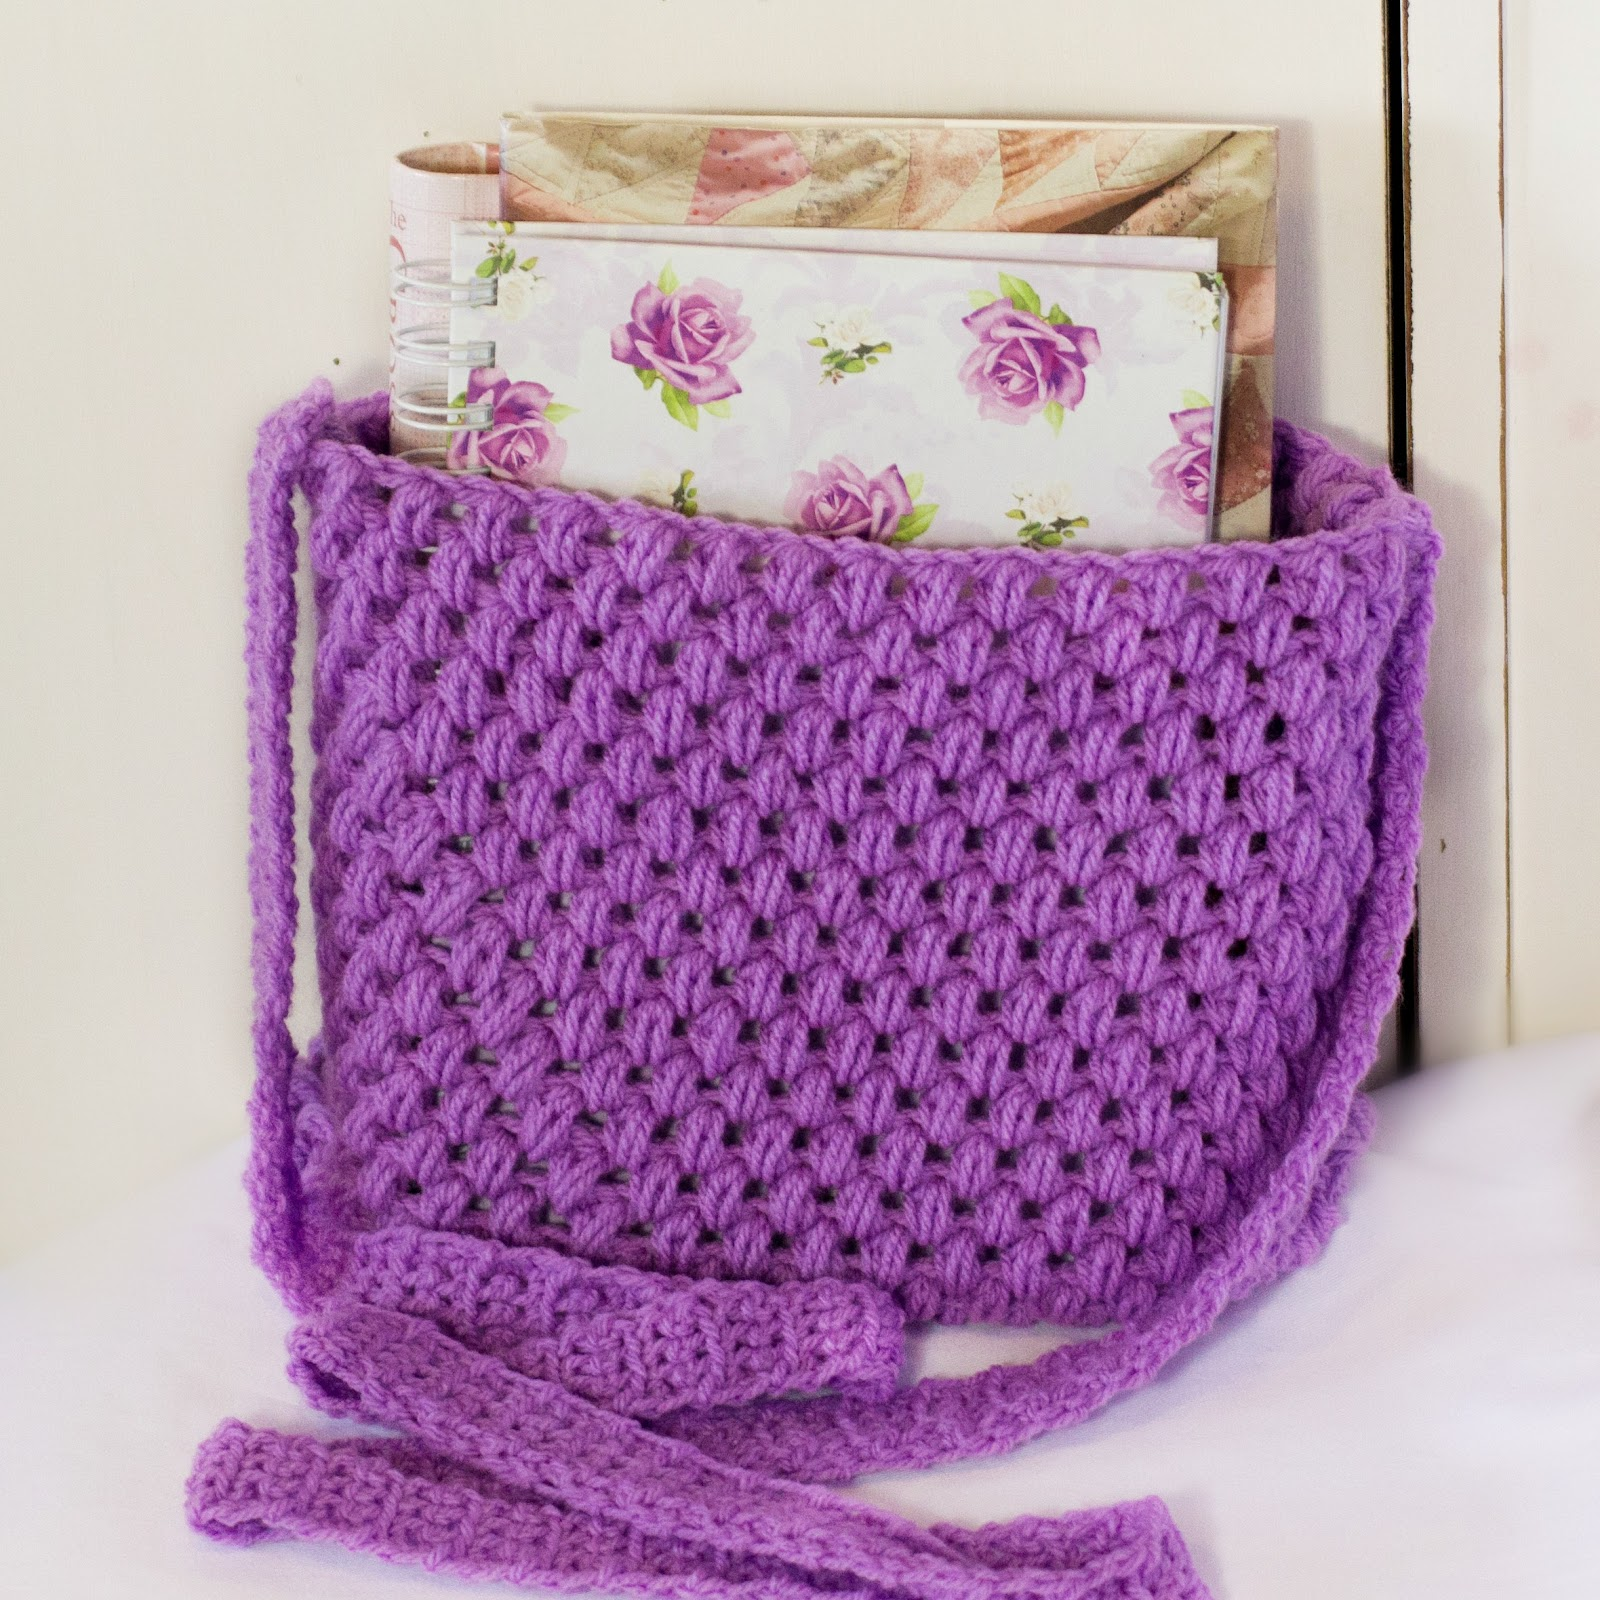 Crochet Bag Pattern Easy : ... Craft, Crochet, Create: Out and About ~ Easy Tote Bag Crochet Pattern